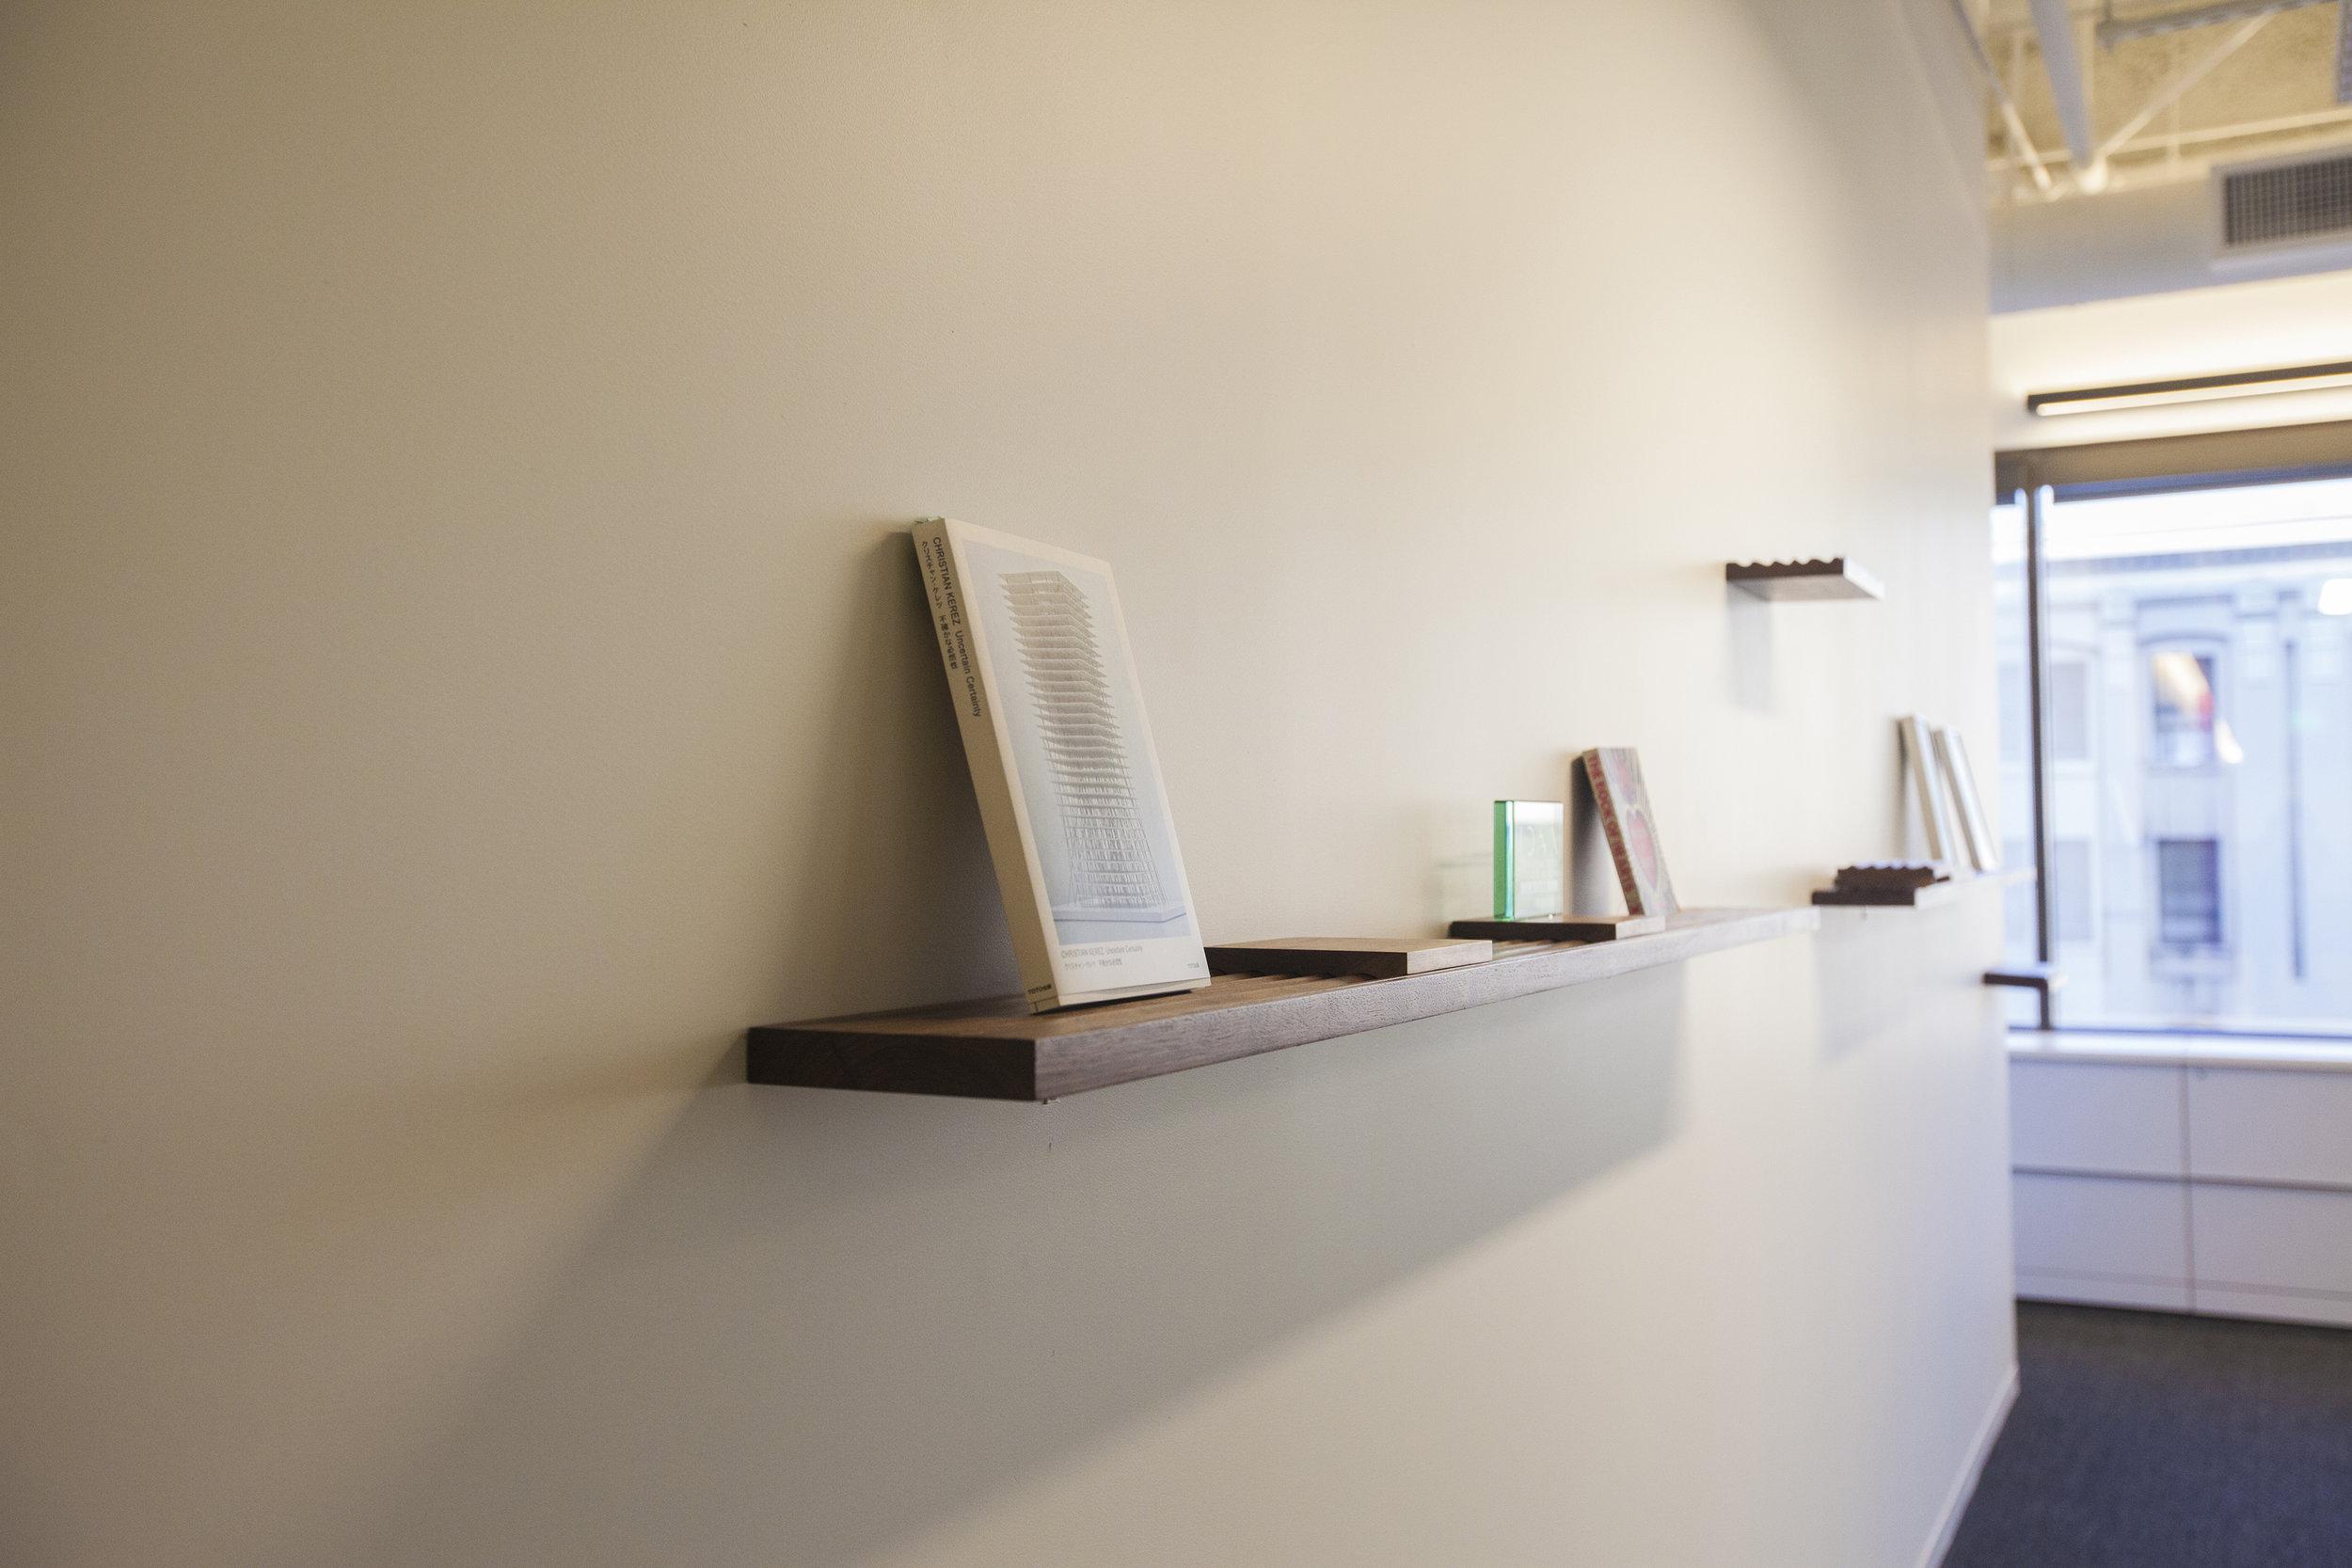 Beginning the layout, the cantilevering shelves arranged decoratively along the wall.